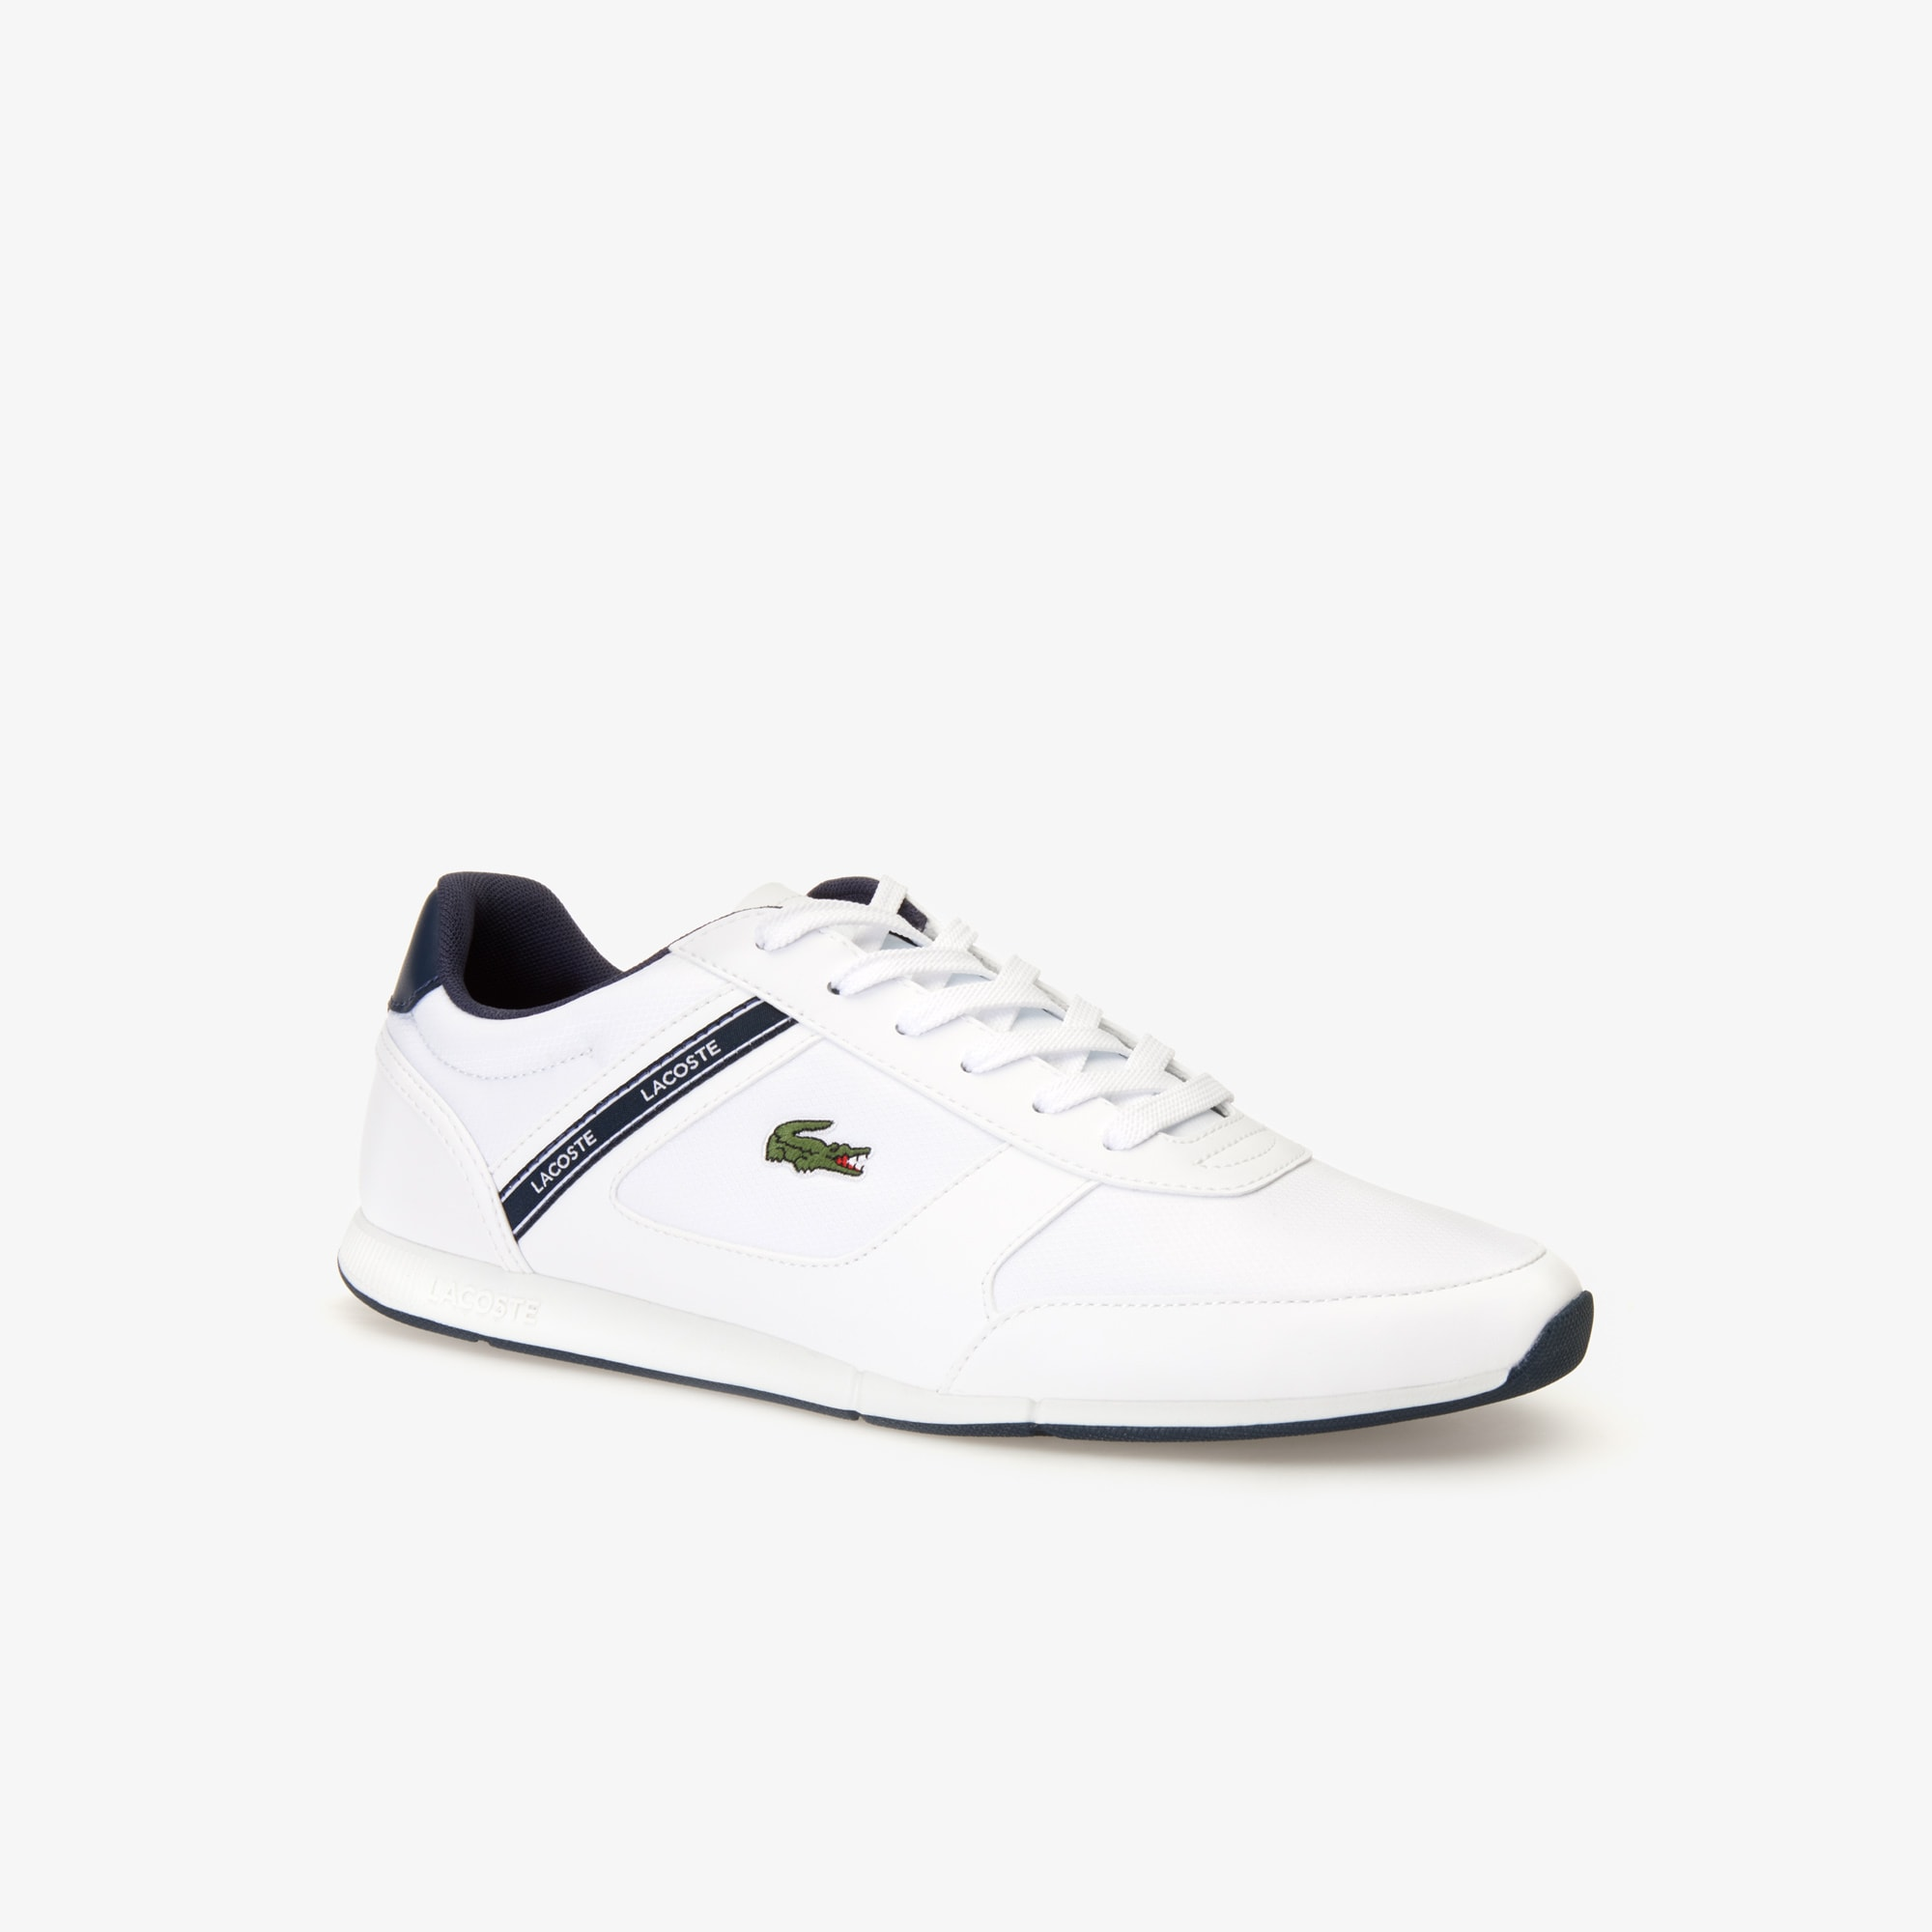 344f46964f7941 Lacoste shoes for men  Sneakers